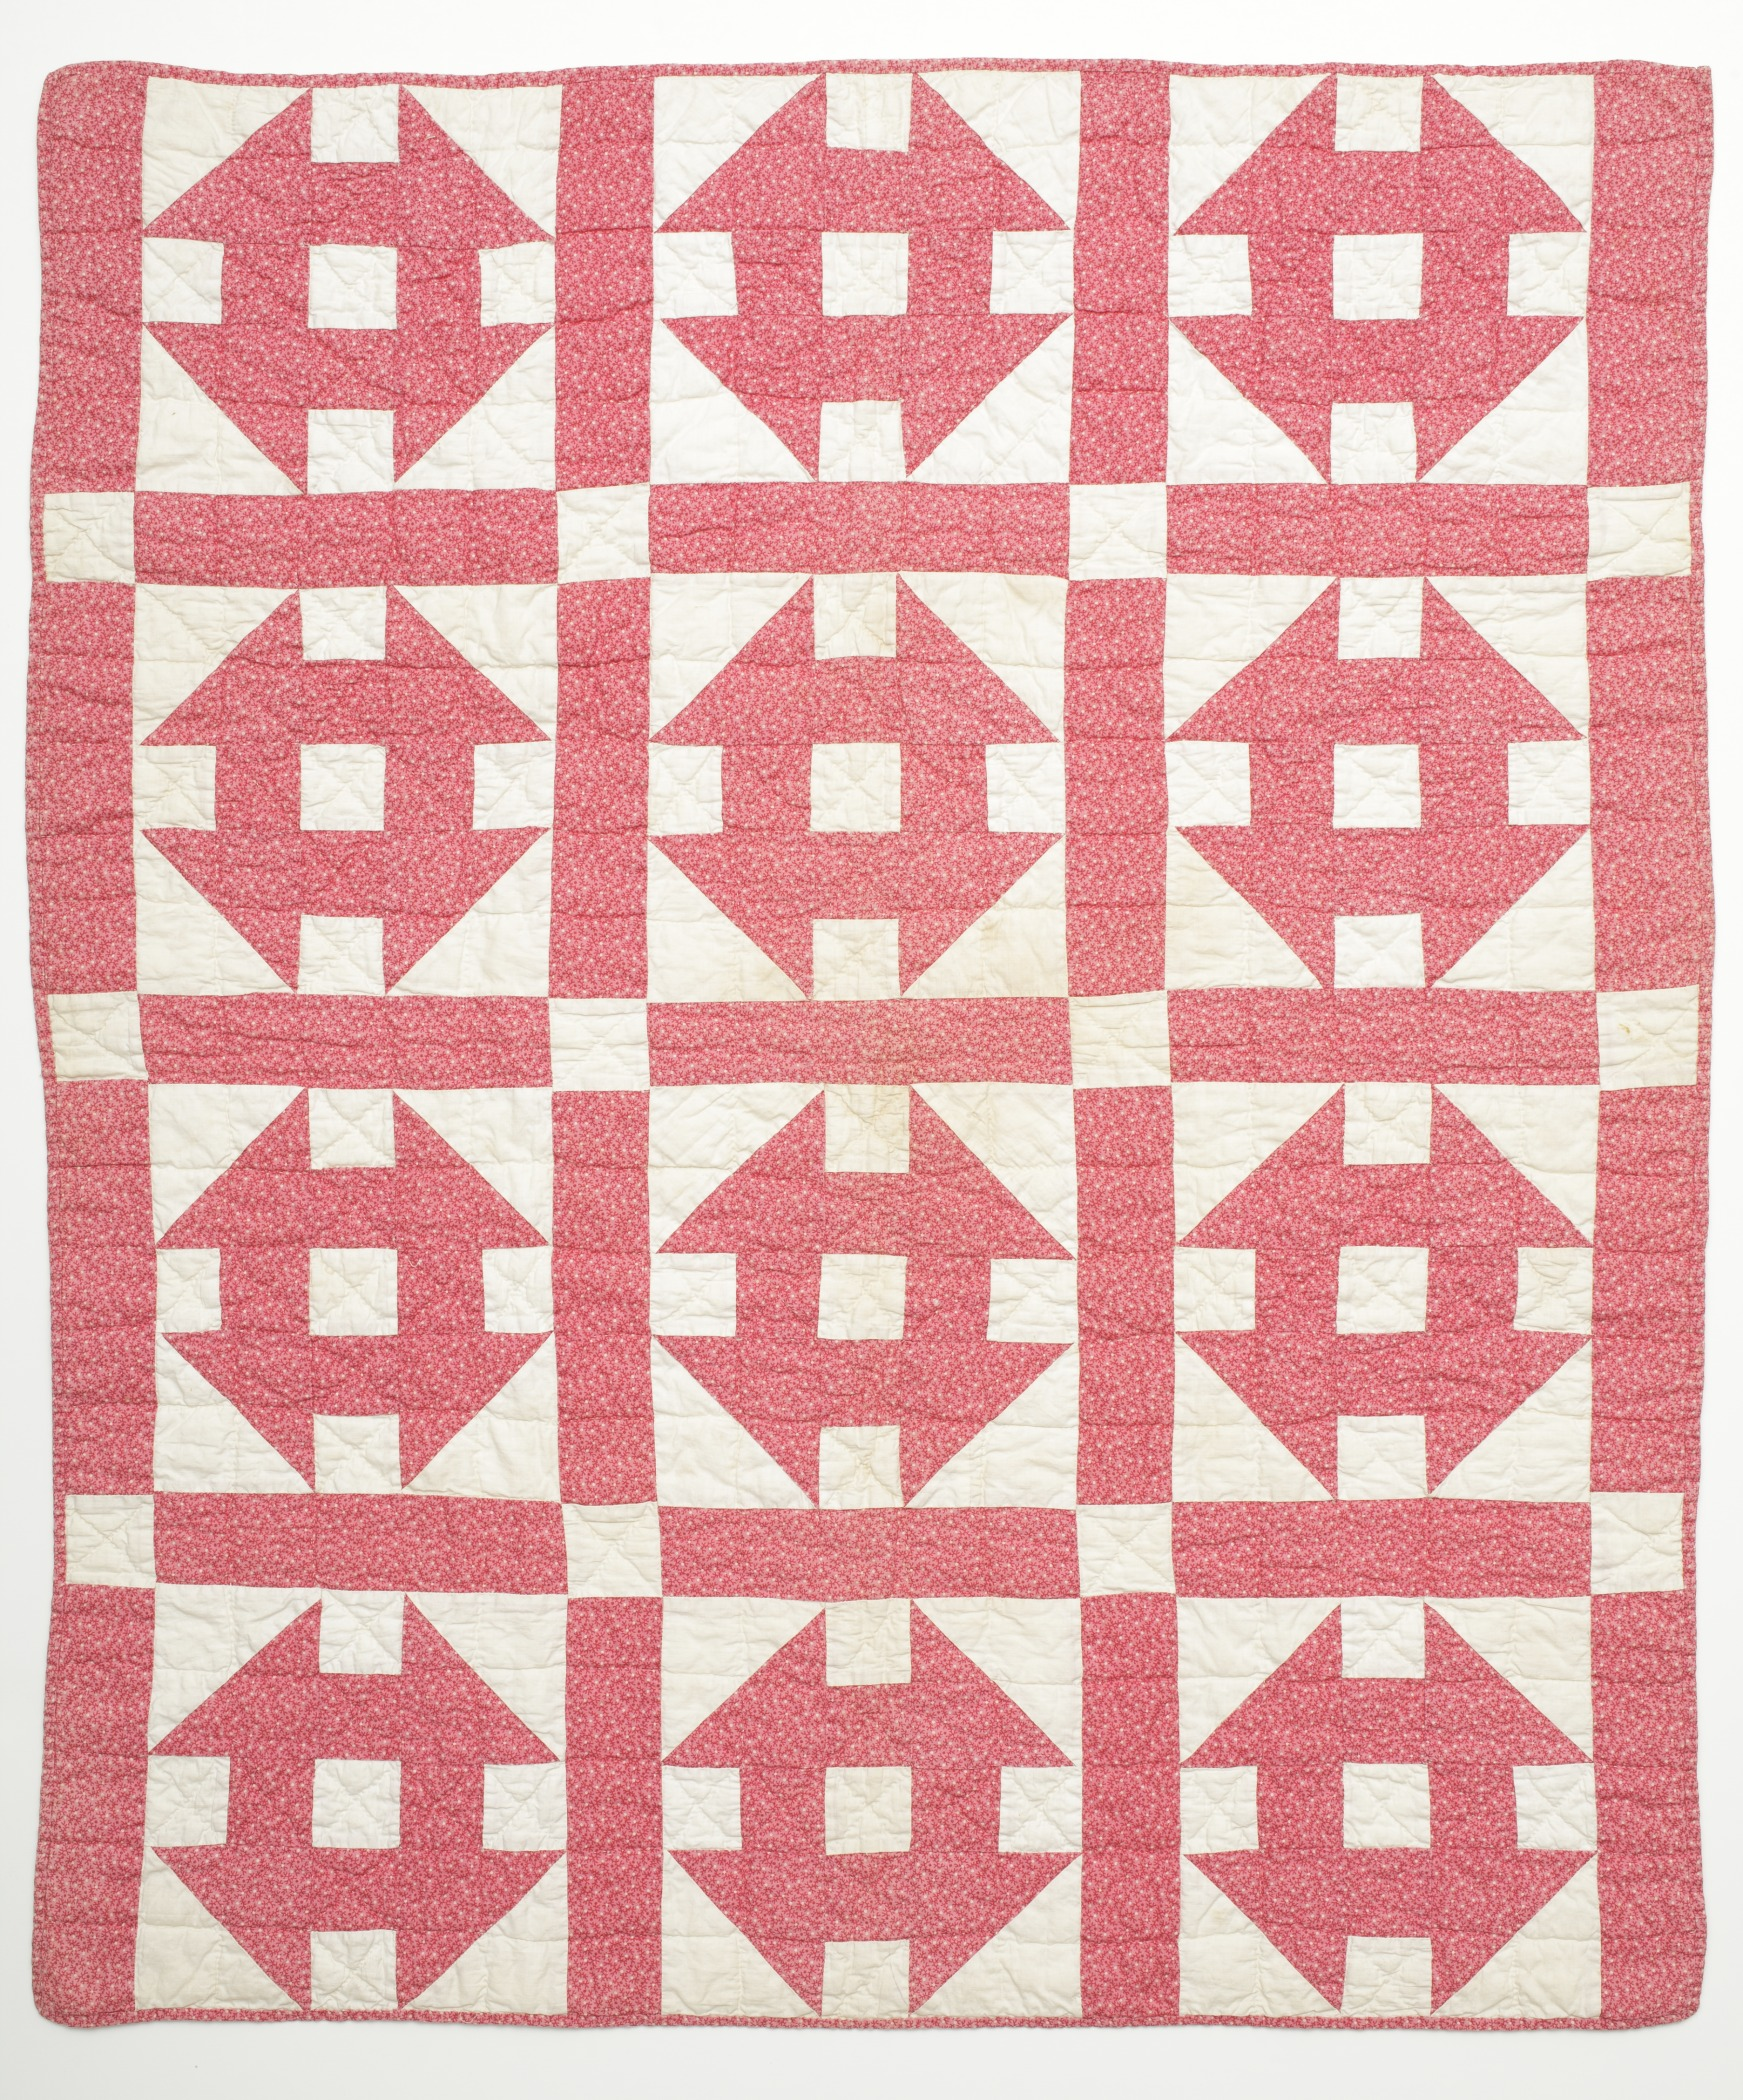 Filechilds Quilt Hole In The Barn Door Lacma M9135213 1 Of